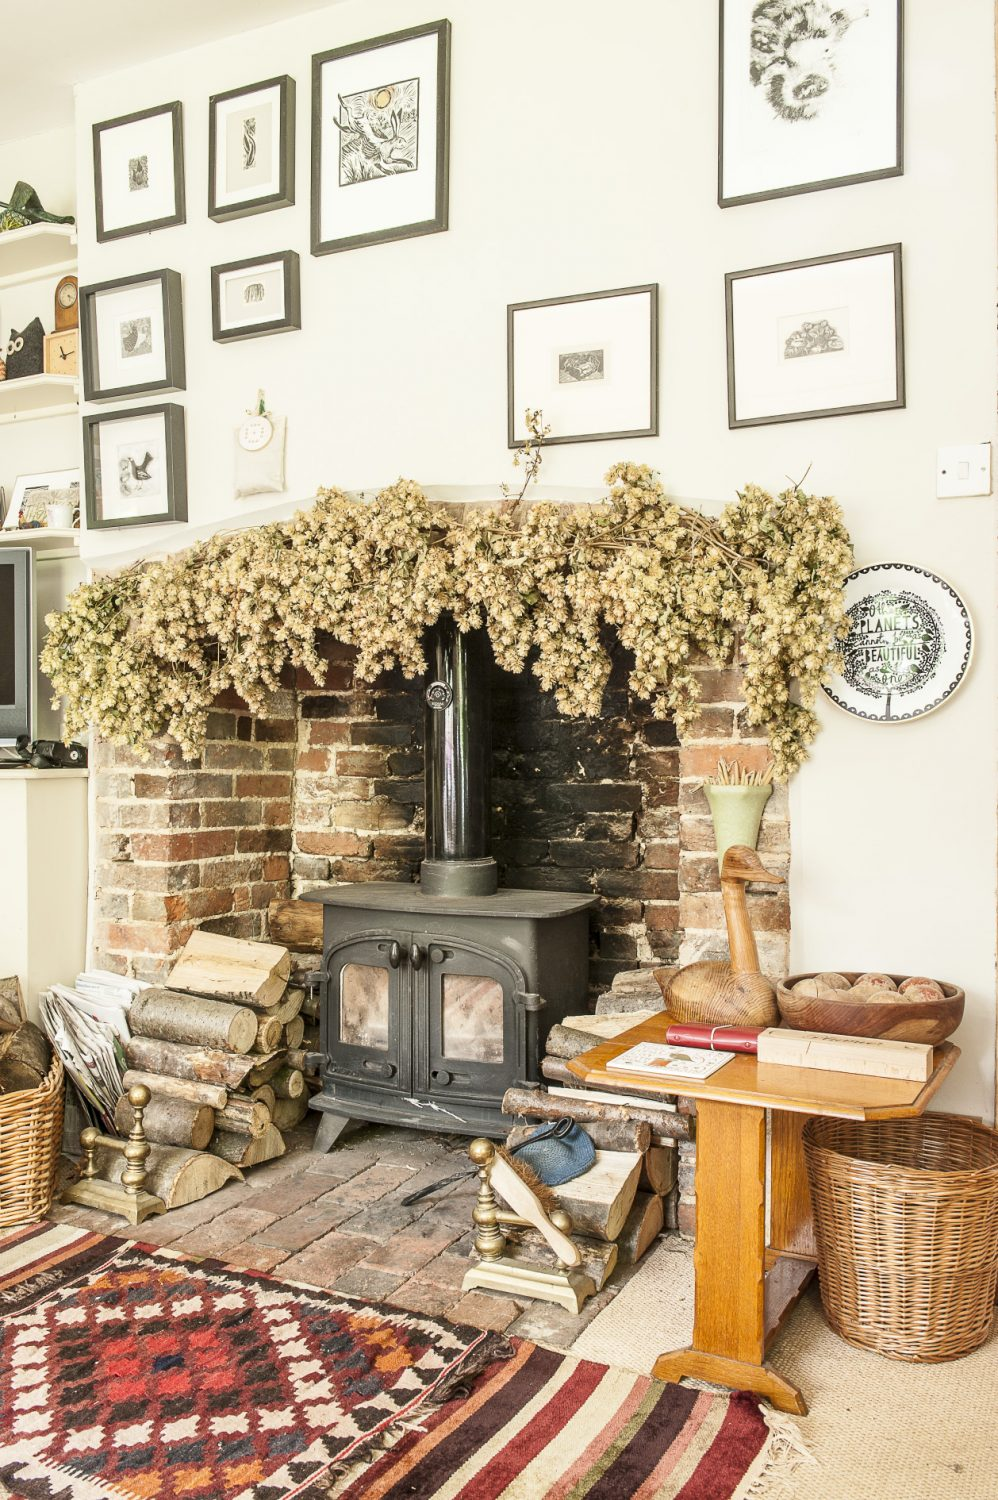 Due to the fact the house has no central heating, the previous owners had installed a wood burner in the sitting room